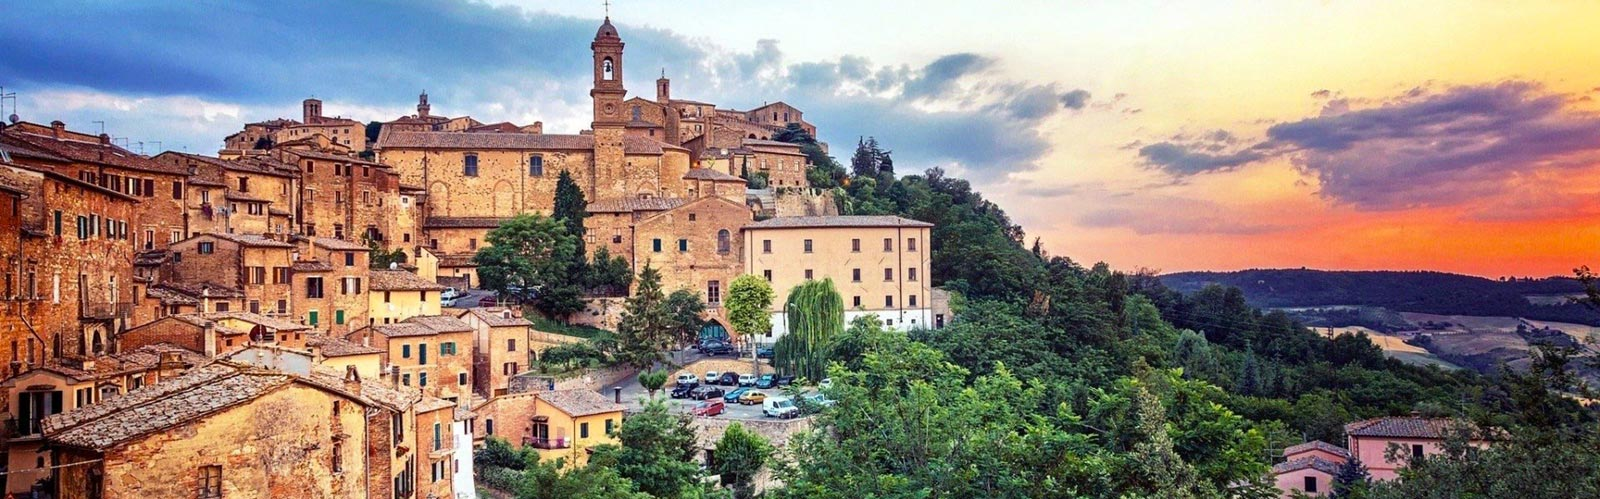 montepulciano-weddings